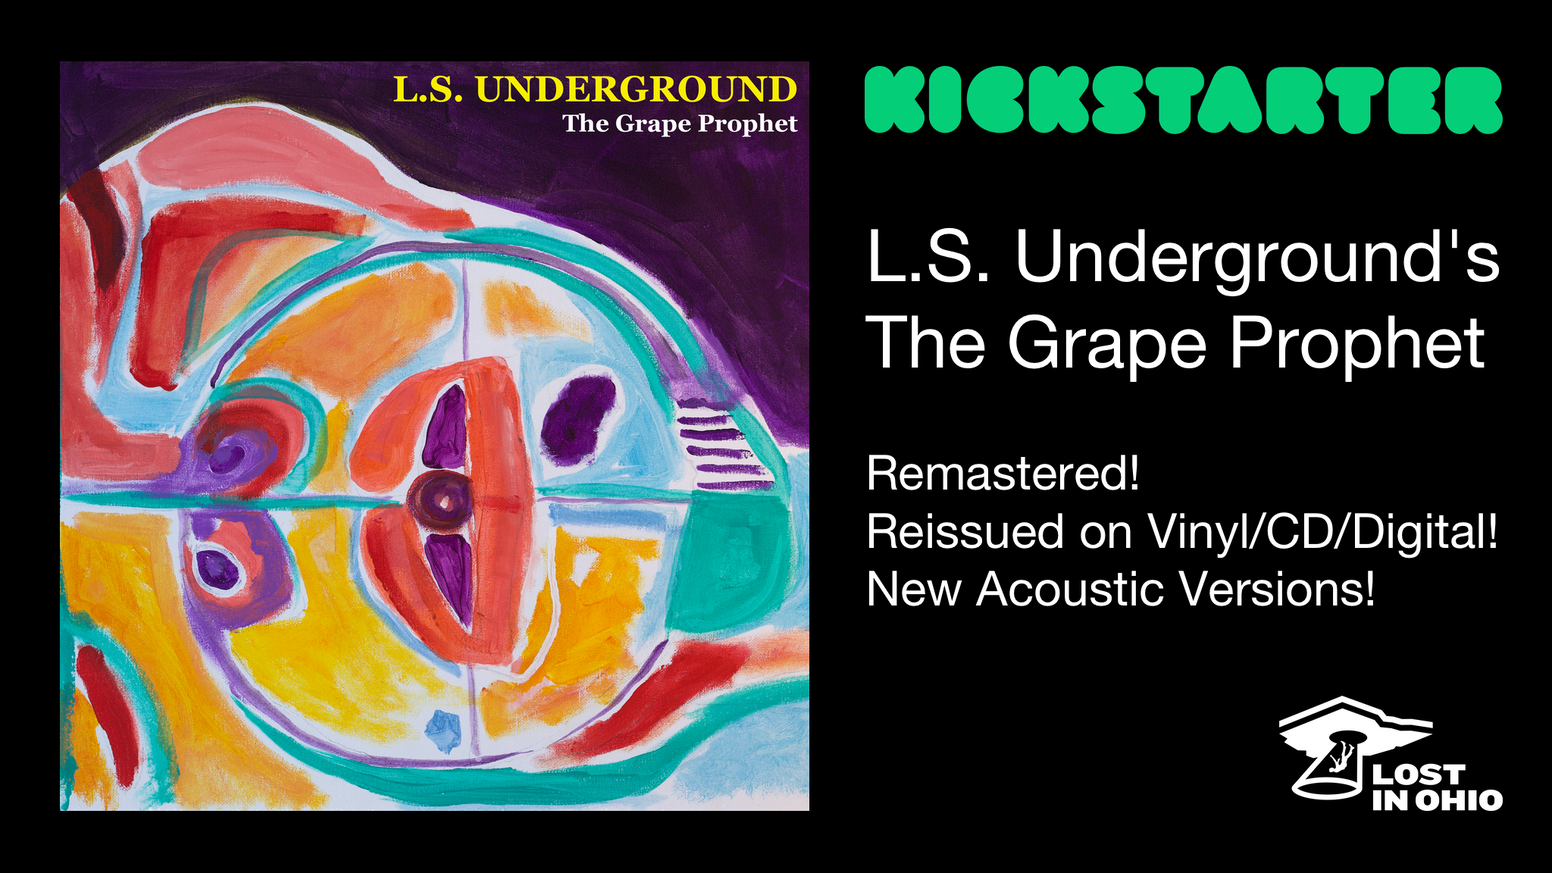 """L.S.U's classic rock opera """"The Grape Prophet"""", remastered for vinyl, CD and digital! Featuring brand-new acoustic recordings!"""